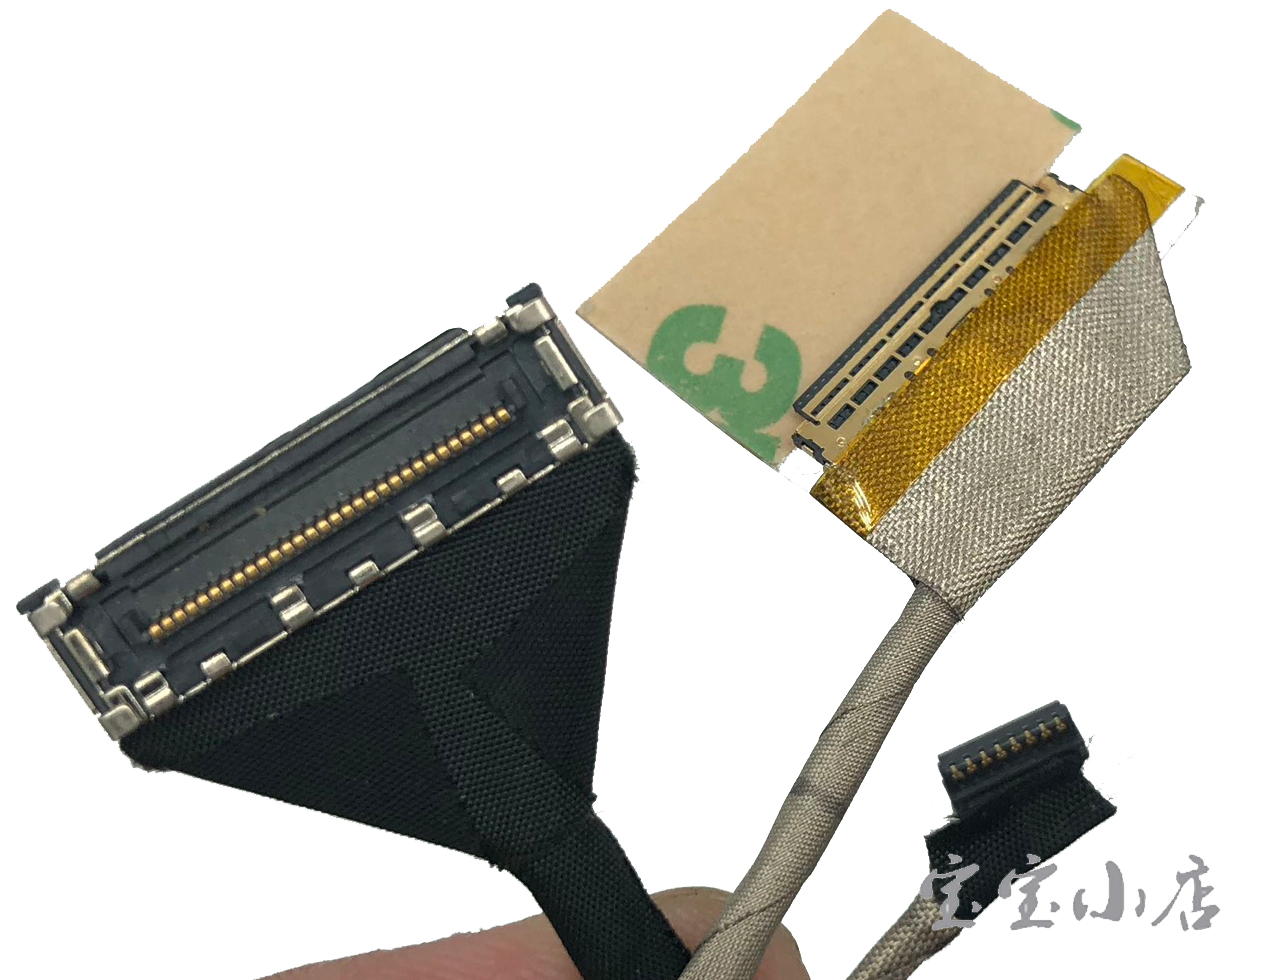 DC02001MC00 联想 Lenovo Ideapad G50 G50-30 G50-45 G50-70 Z50 Lcd Lvds Cable 屏线 排线 液晶连接线